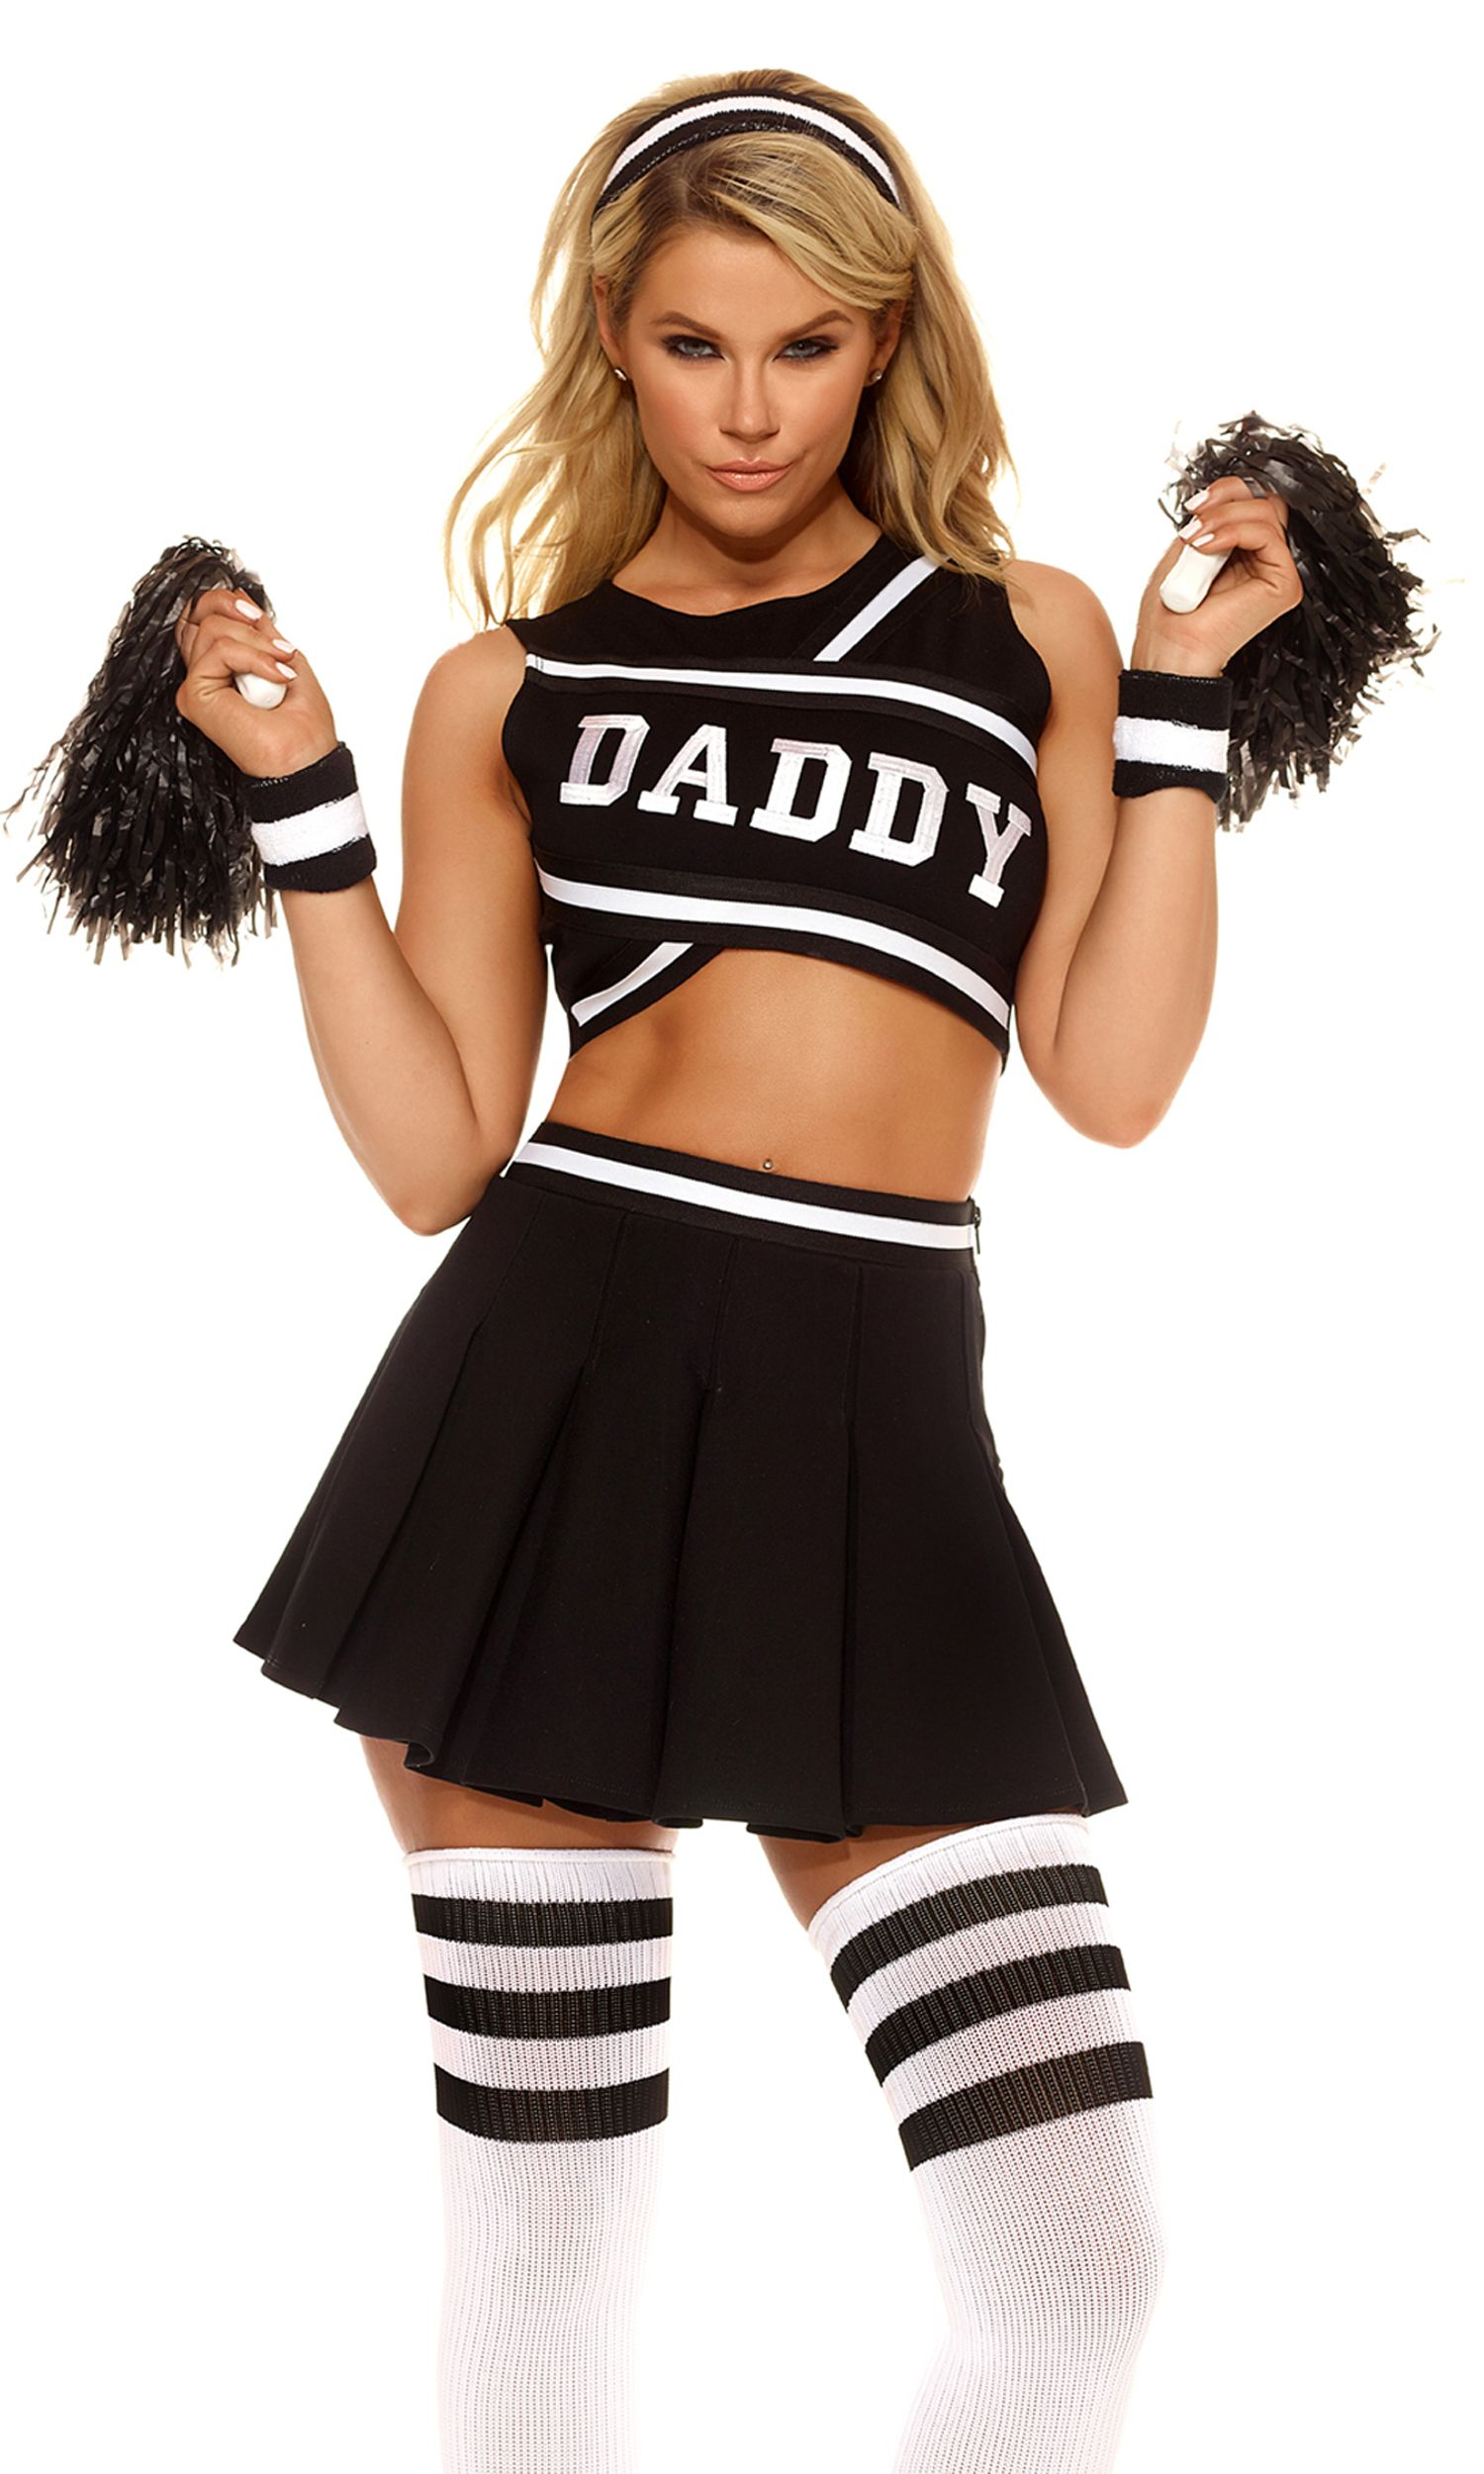 youll definitely secure a sugar daddy this halloween with our sexy daddys girl cheerleader - Naughty Girl Halloween Costumes